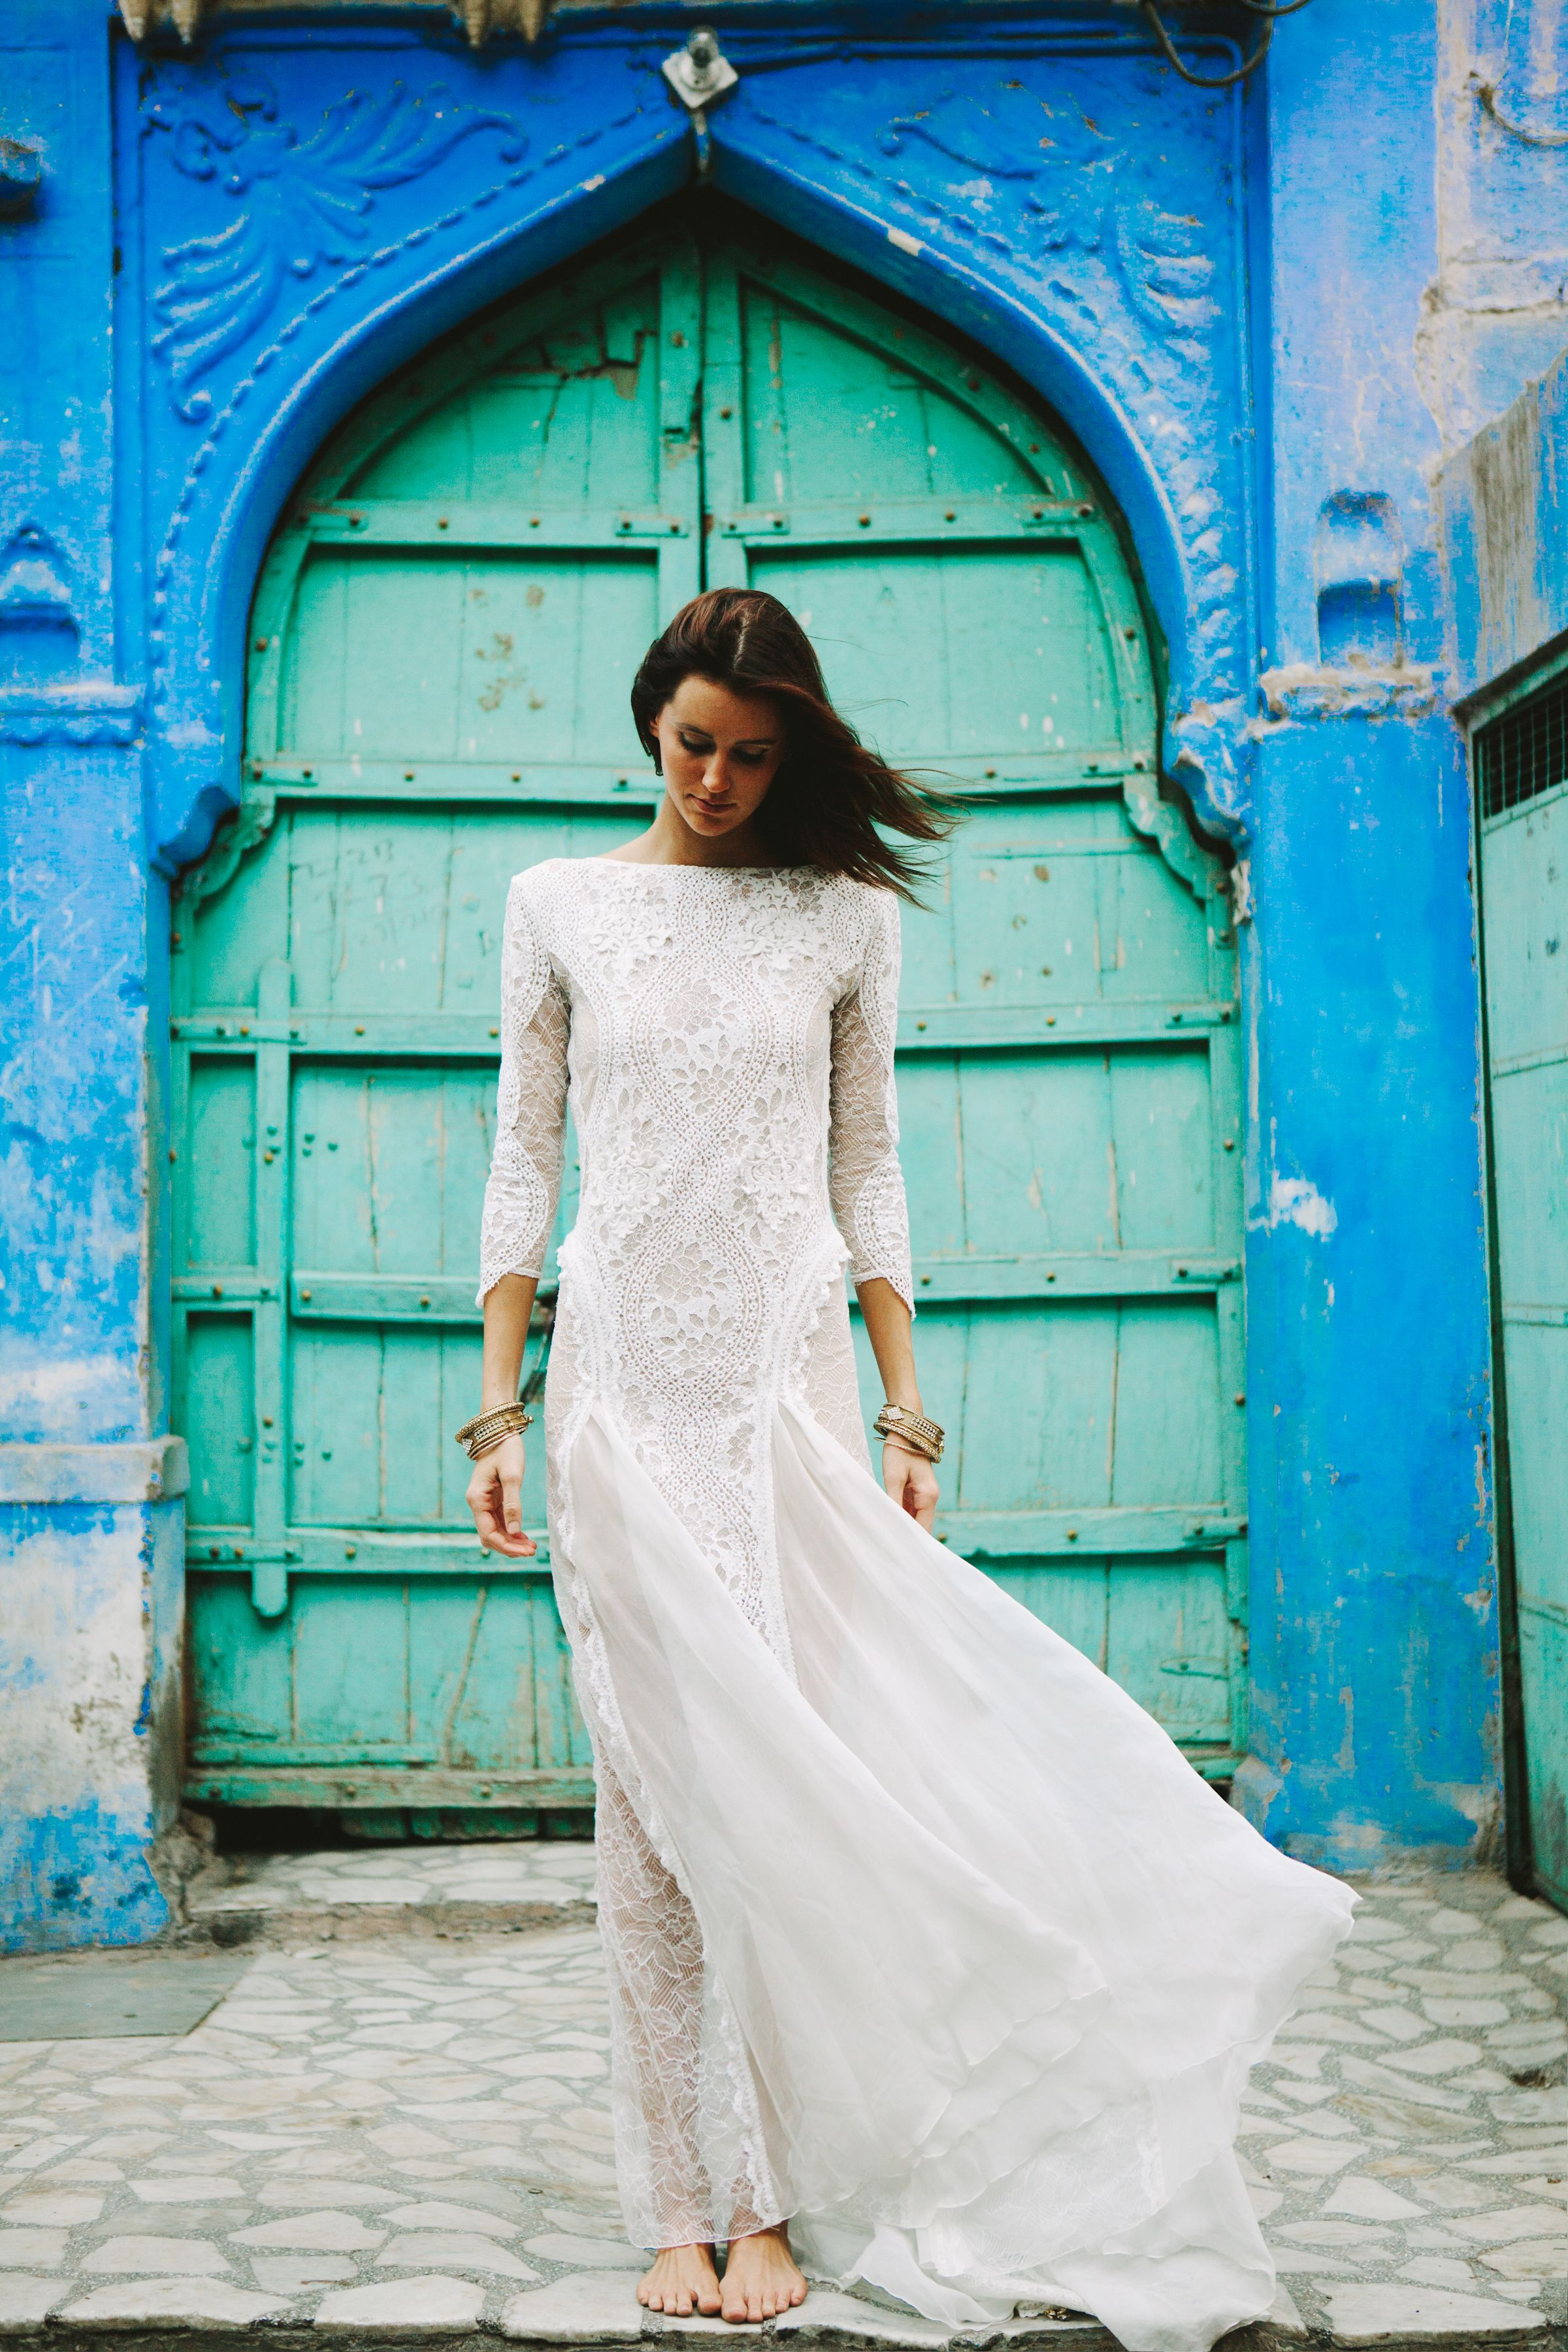 Lace wedding dress. The INCA by Grace Loves Lace, an exquisite lace ...